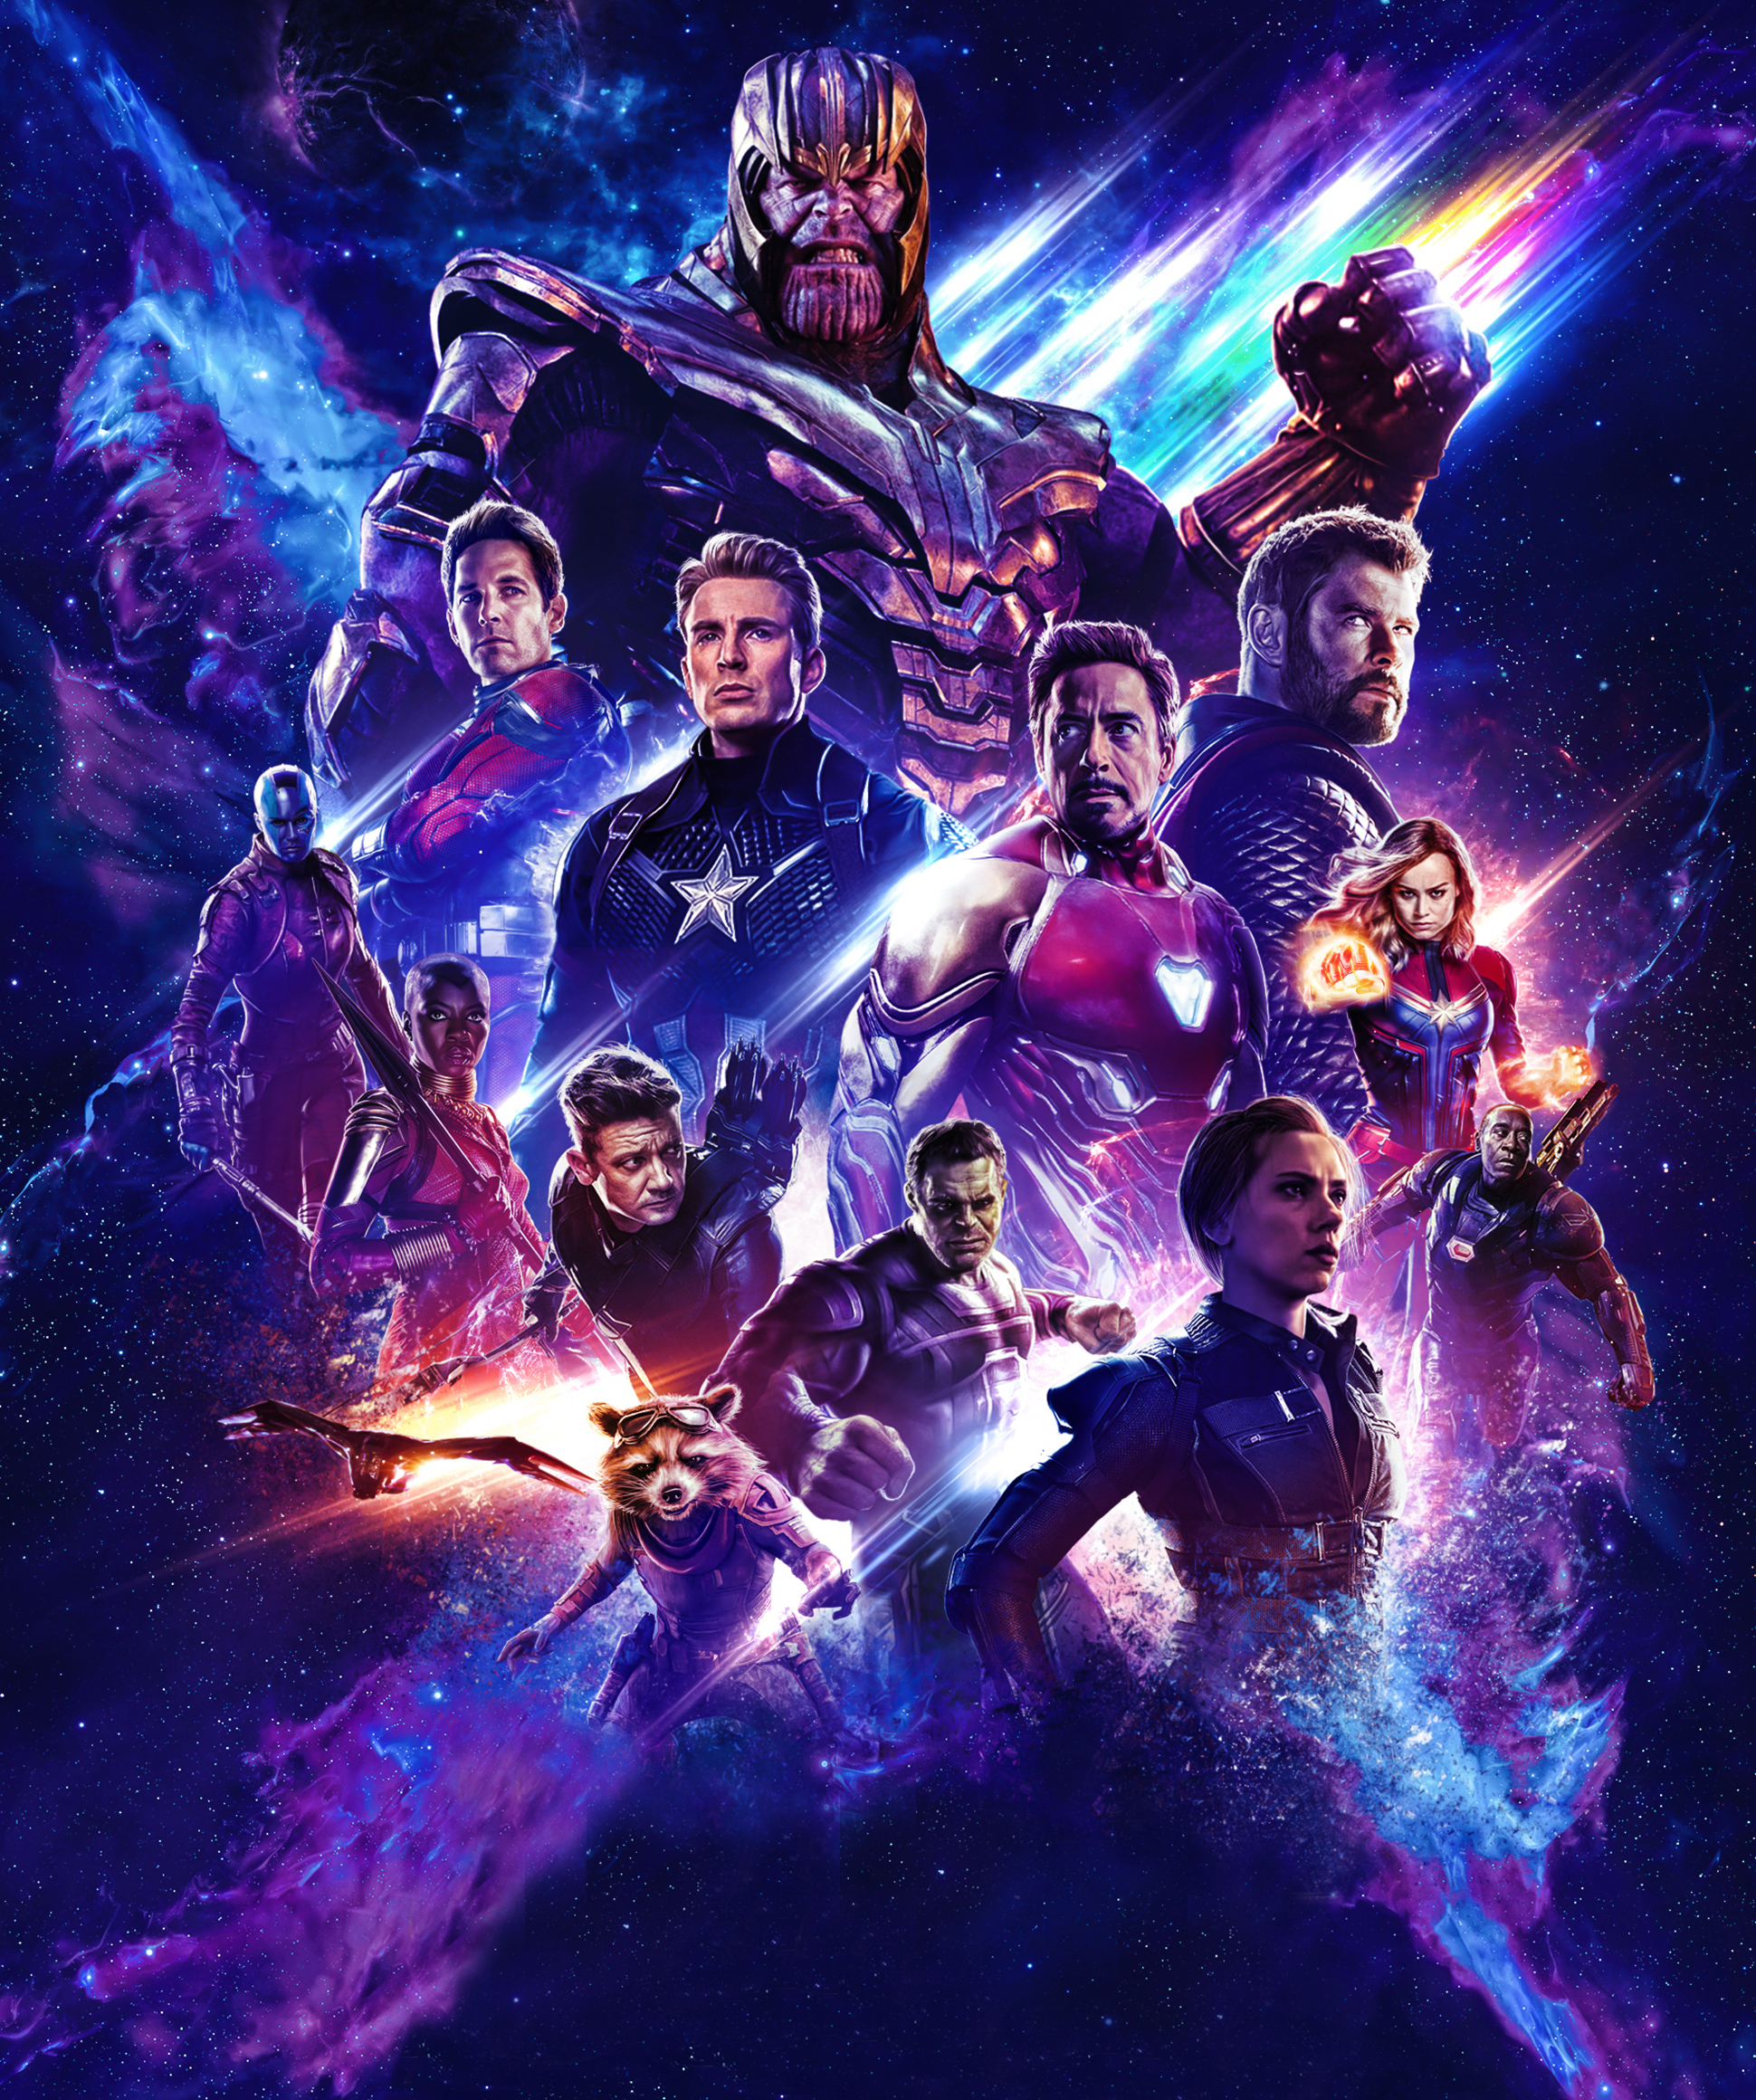 540x960 Avengers Endgame 2019 Movie 540x960 Resolution Wallpaper Hd Movies 4k Wallpapers Images Photos And Background